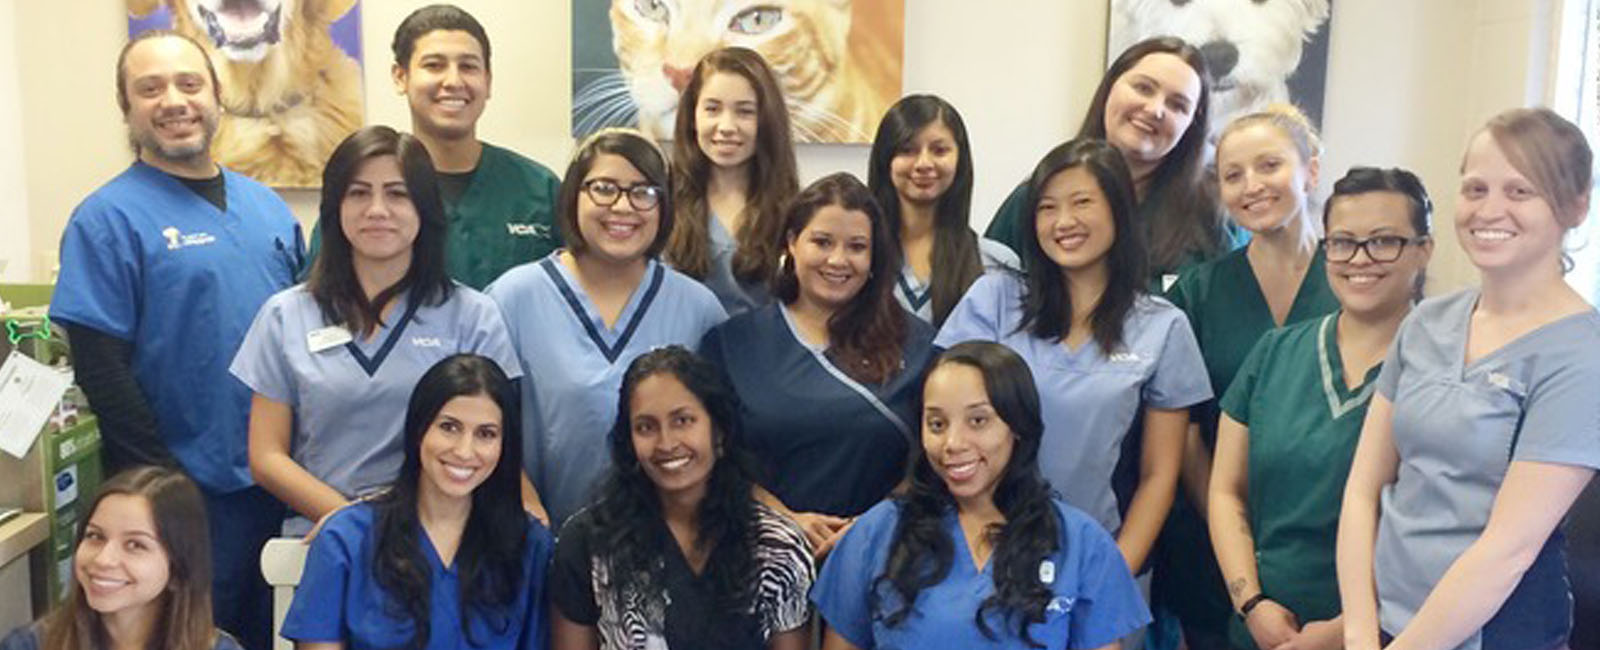 Homepage Team Picture of VCA La Mirada Animal Hospital